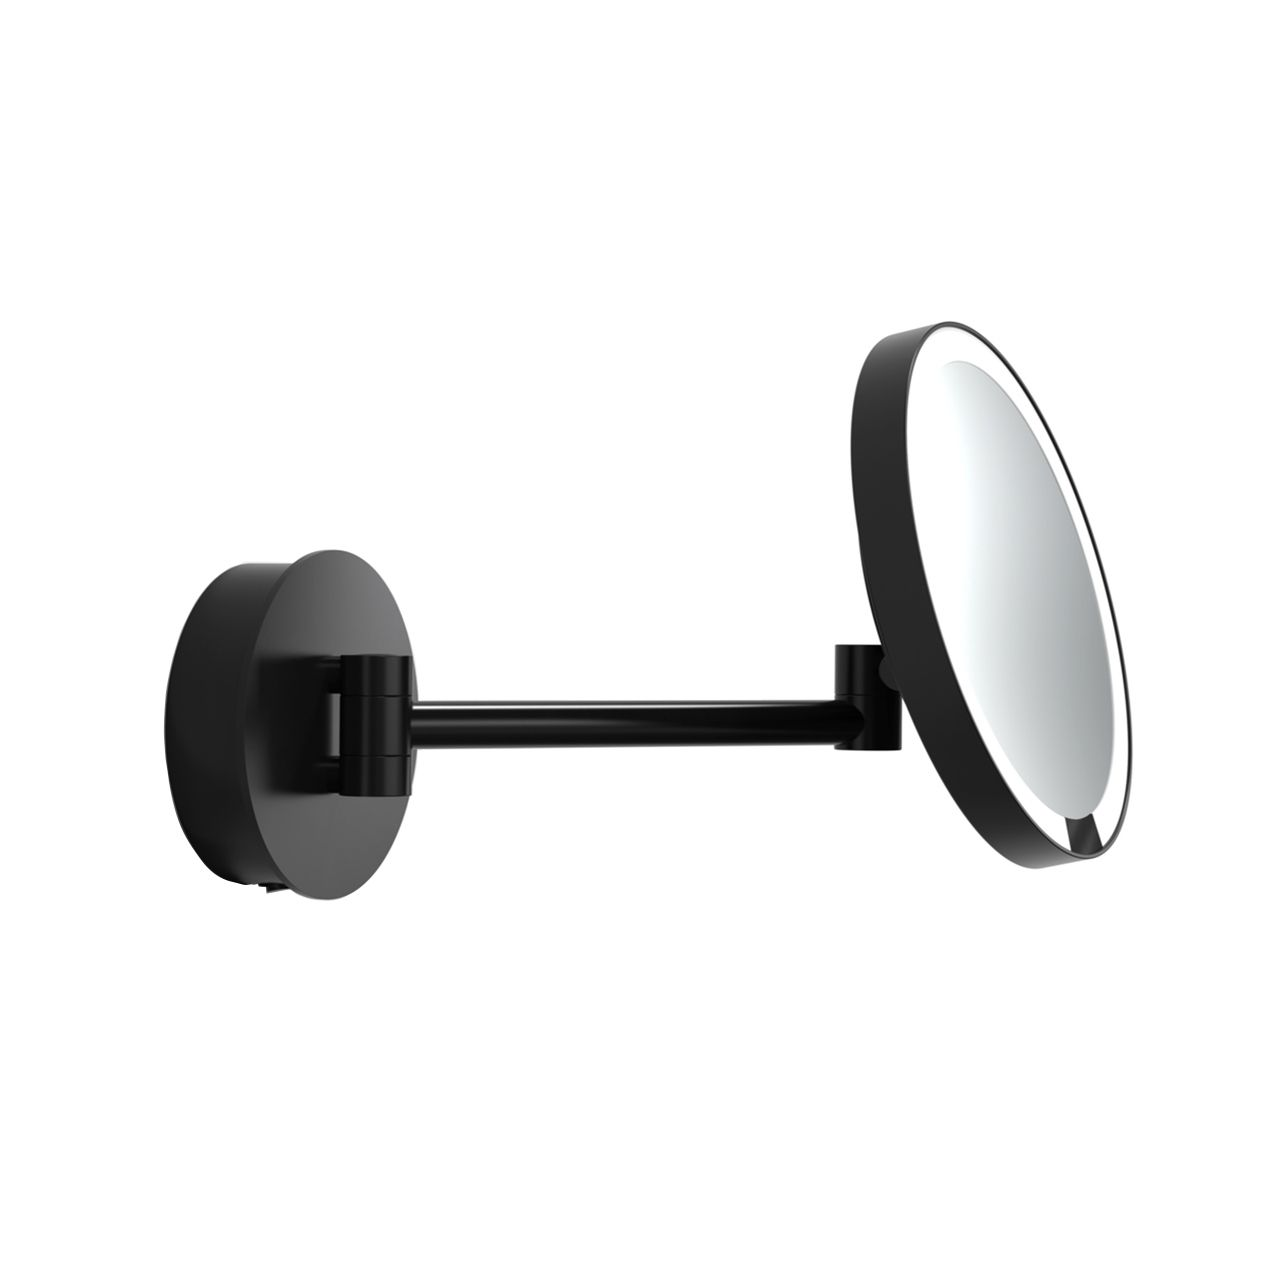 /wp/wp-content/uploads/2020/02/smile-91-led-sensor-activated-5x-magnifying-mirror-with-rechargeable-battery.jpg